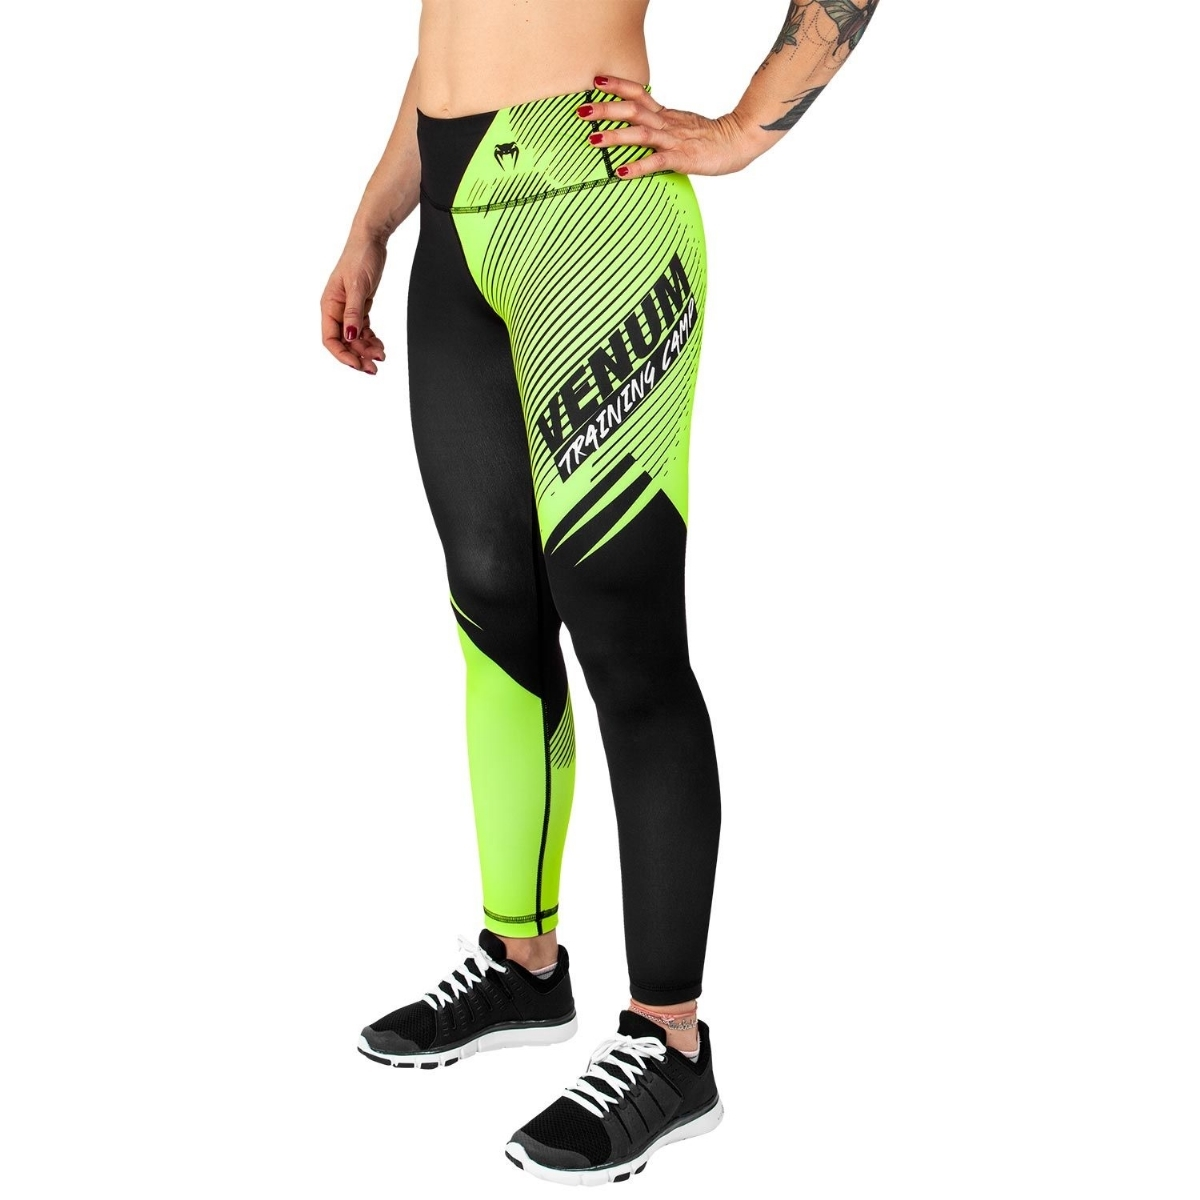 b2e699c280573 Venum Venum Training Camp 2.0 Leggings - Black Neo Yellow - For ...